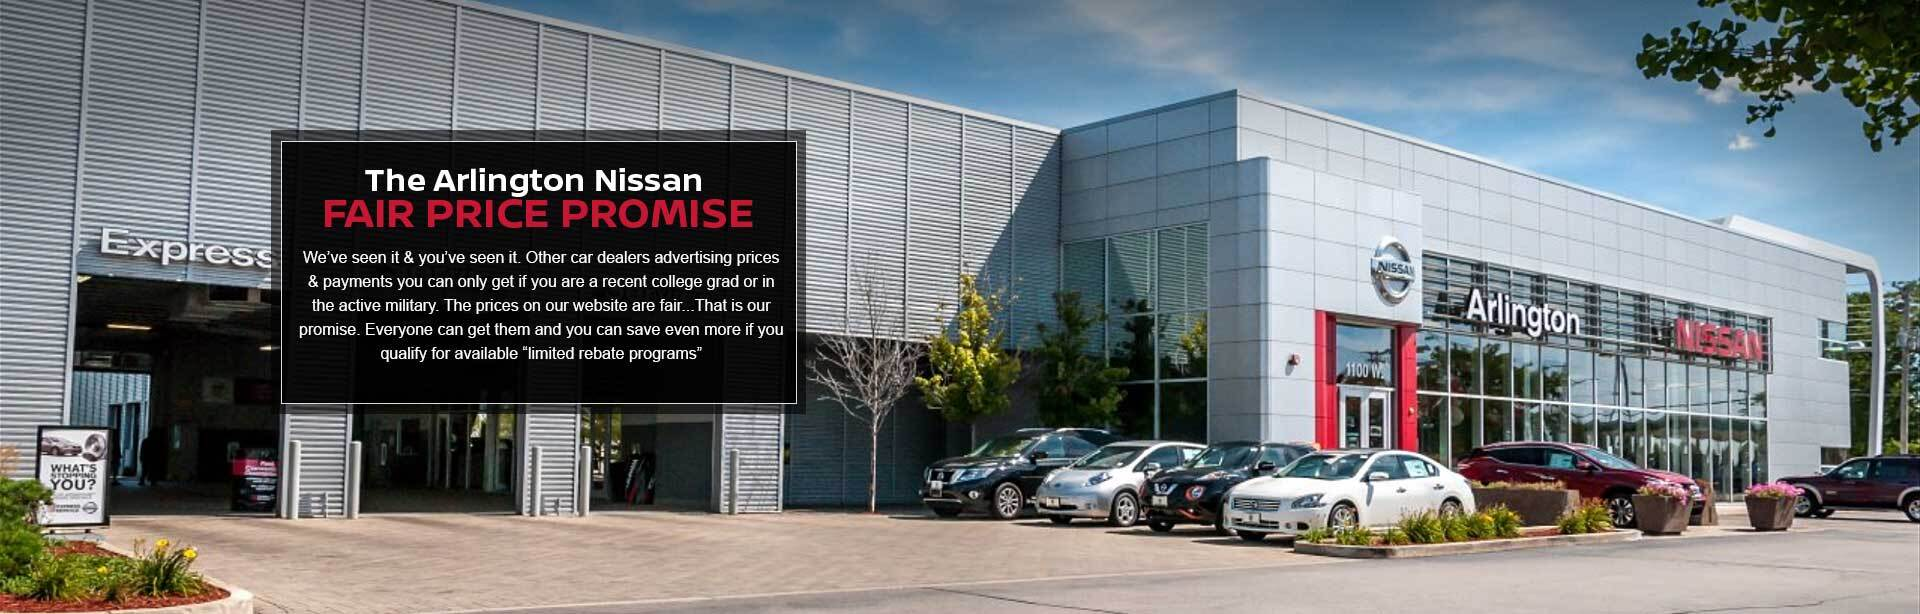 Arlington Nissan Commercial Fair Price Promise